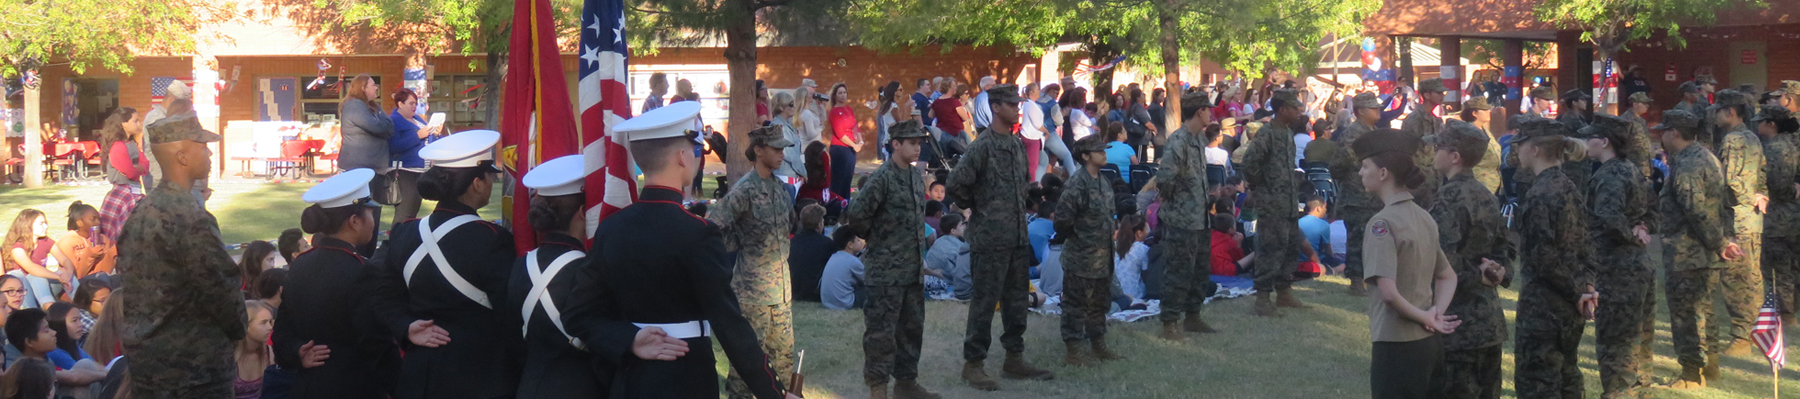 ROTC participating in program